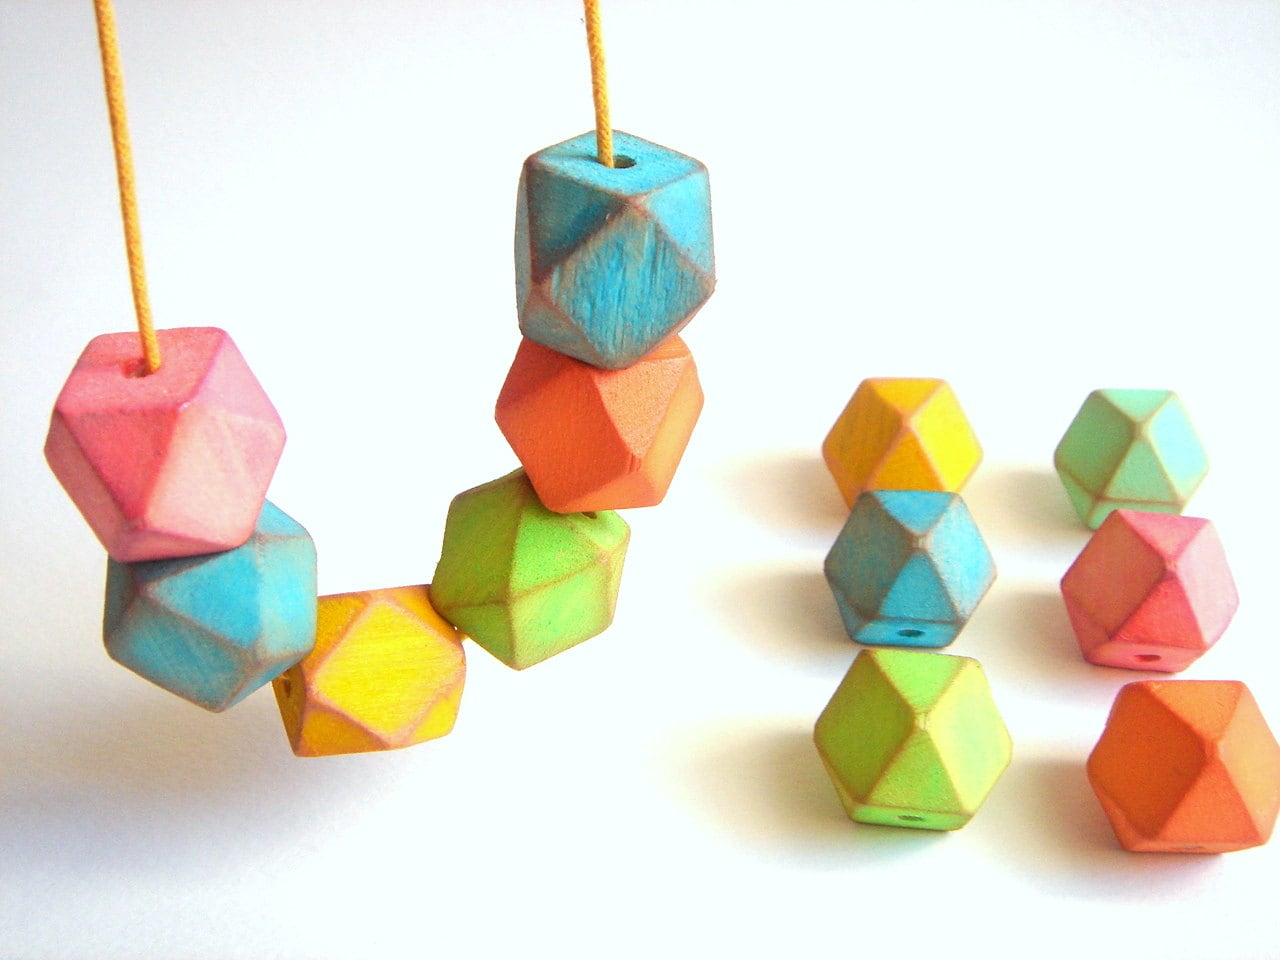 Neon Geometric Faceted Wood Beads,Hand Painted Wood beads, Geometric Jewelry,Do it Yourself Geometric necklace - LiKeBeads8